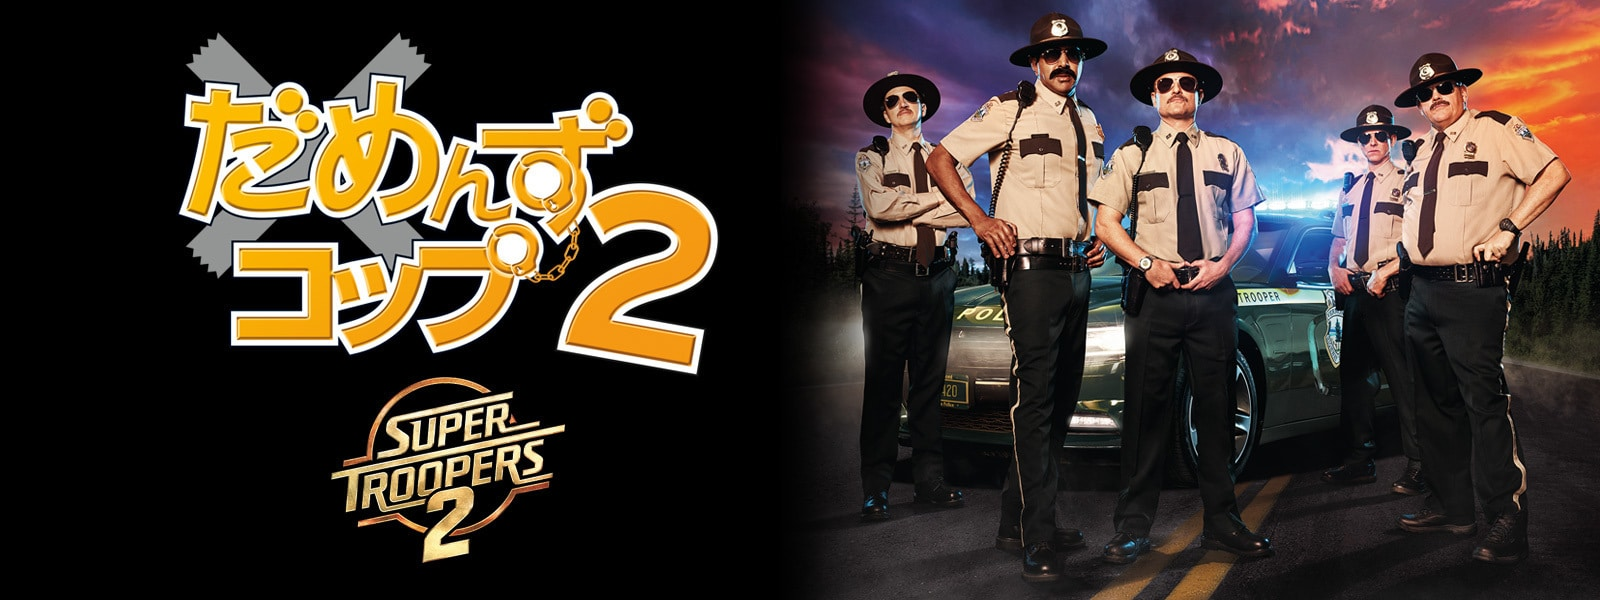 だめんず・コップ2|Super Troopers 2 Hero Object